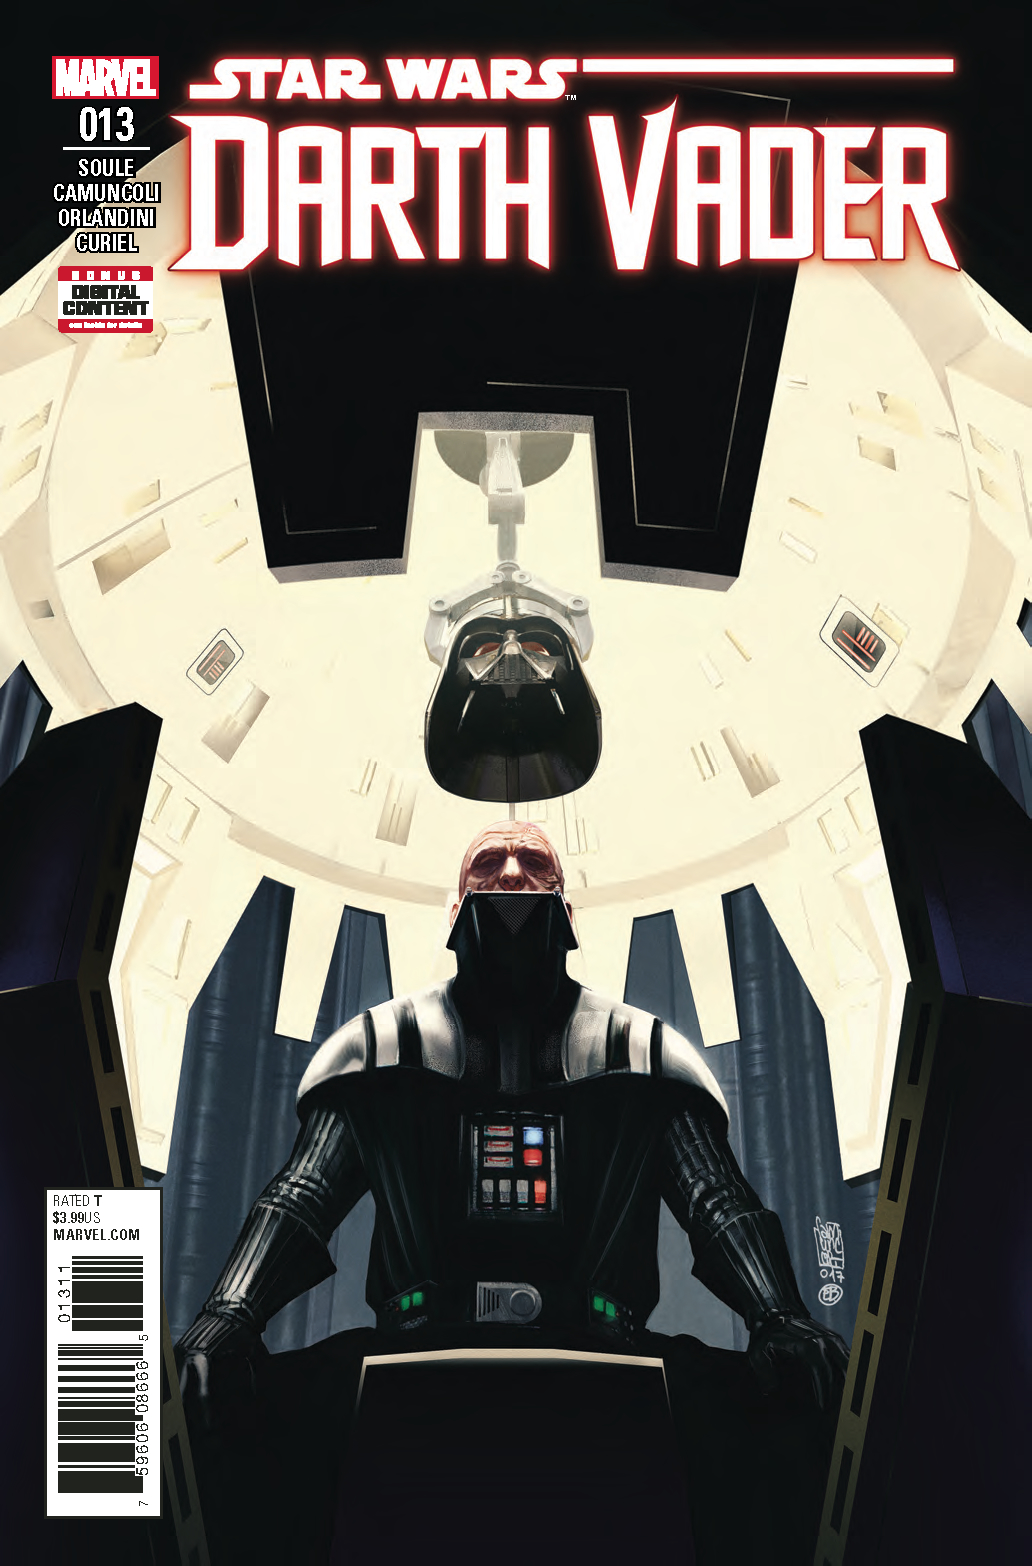 STAR WARS DARTH VADER #13